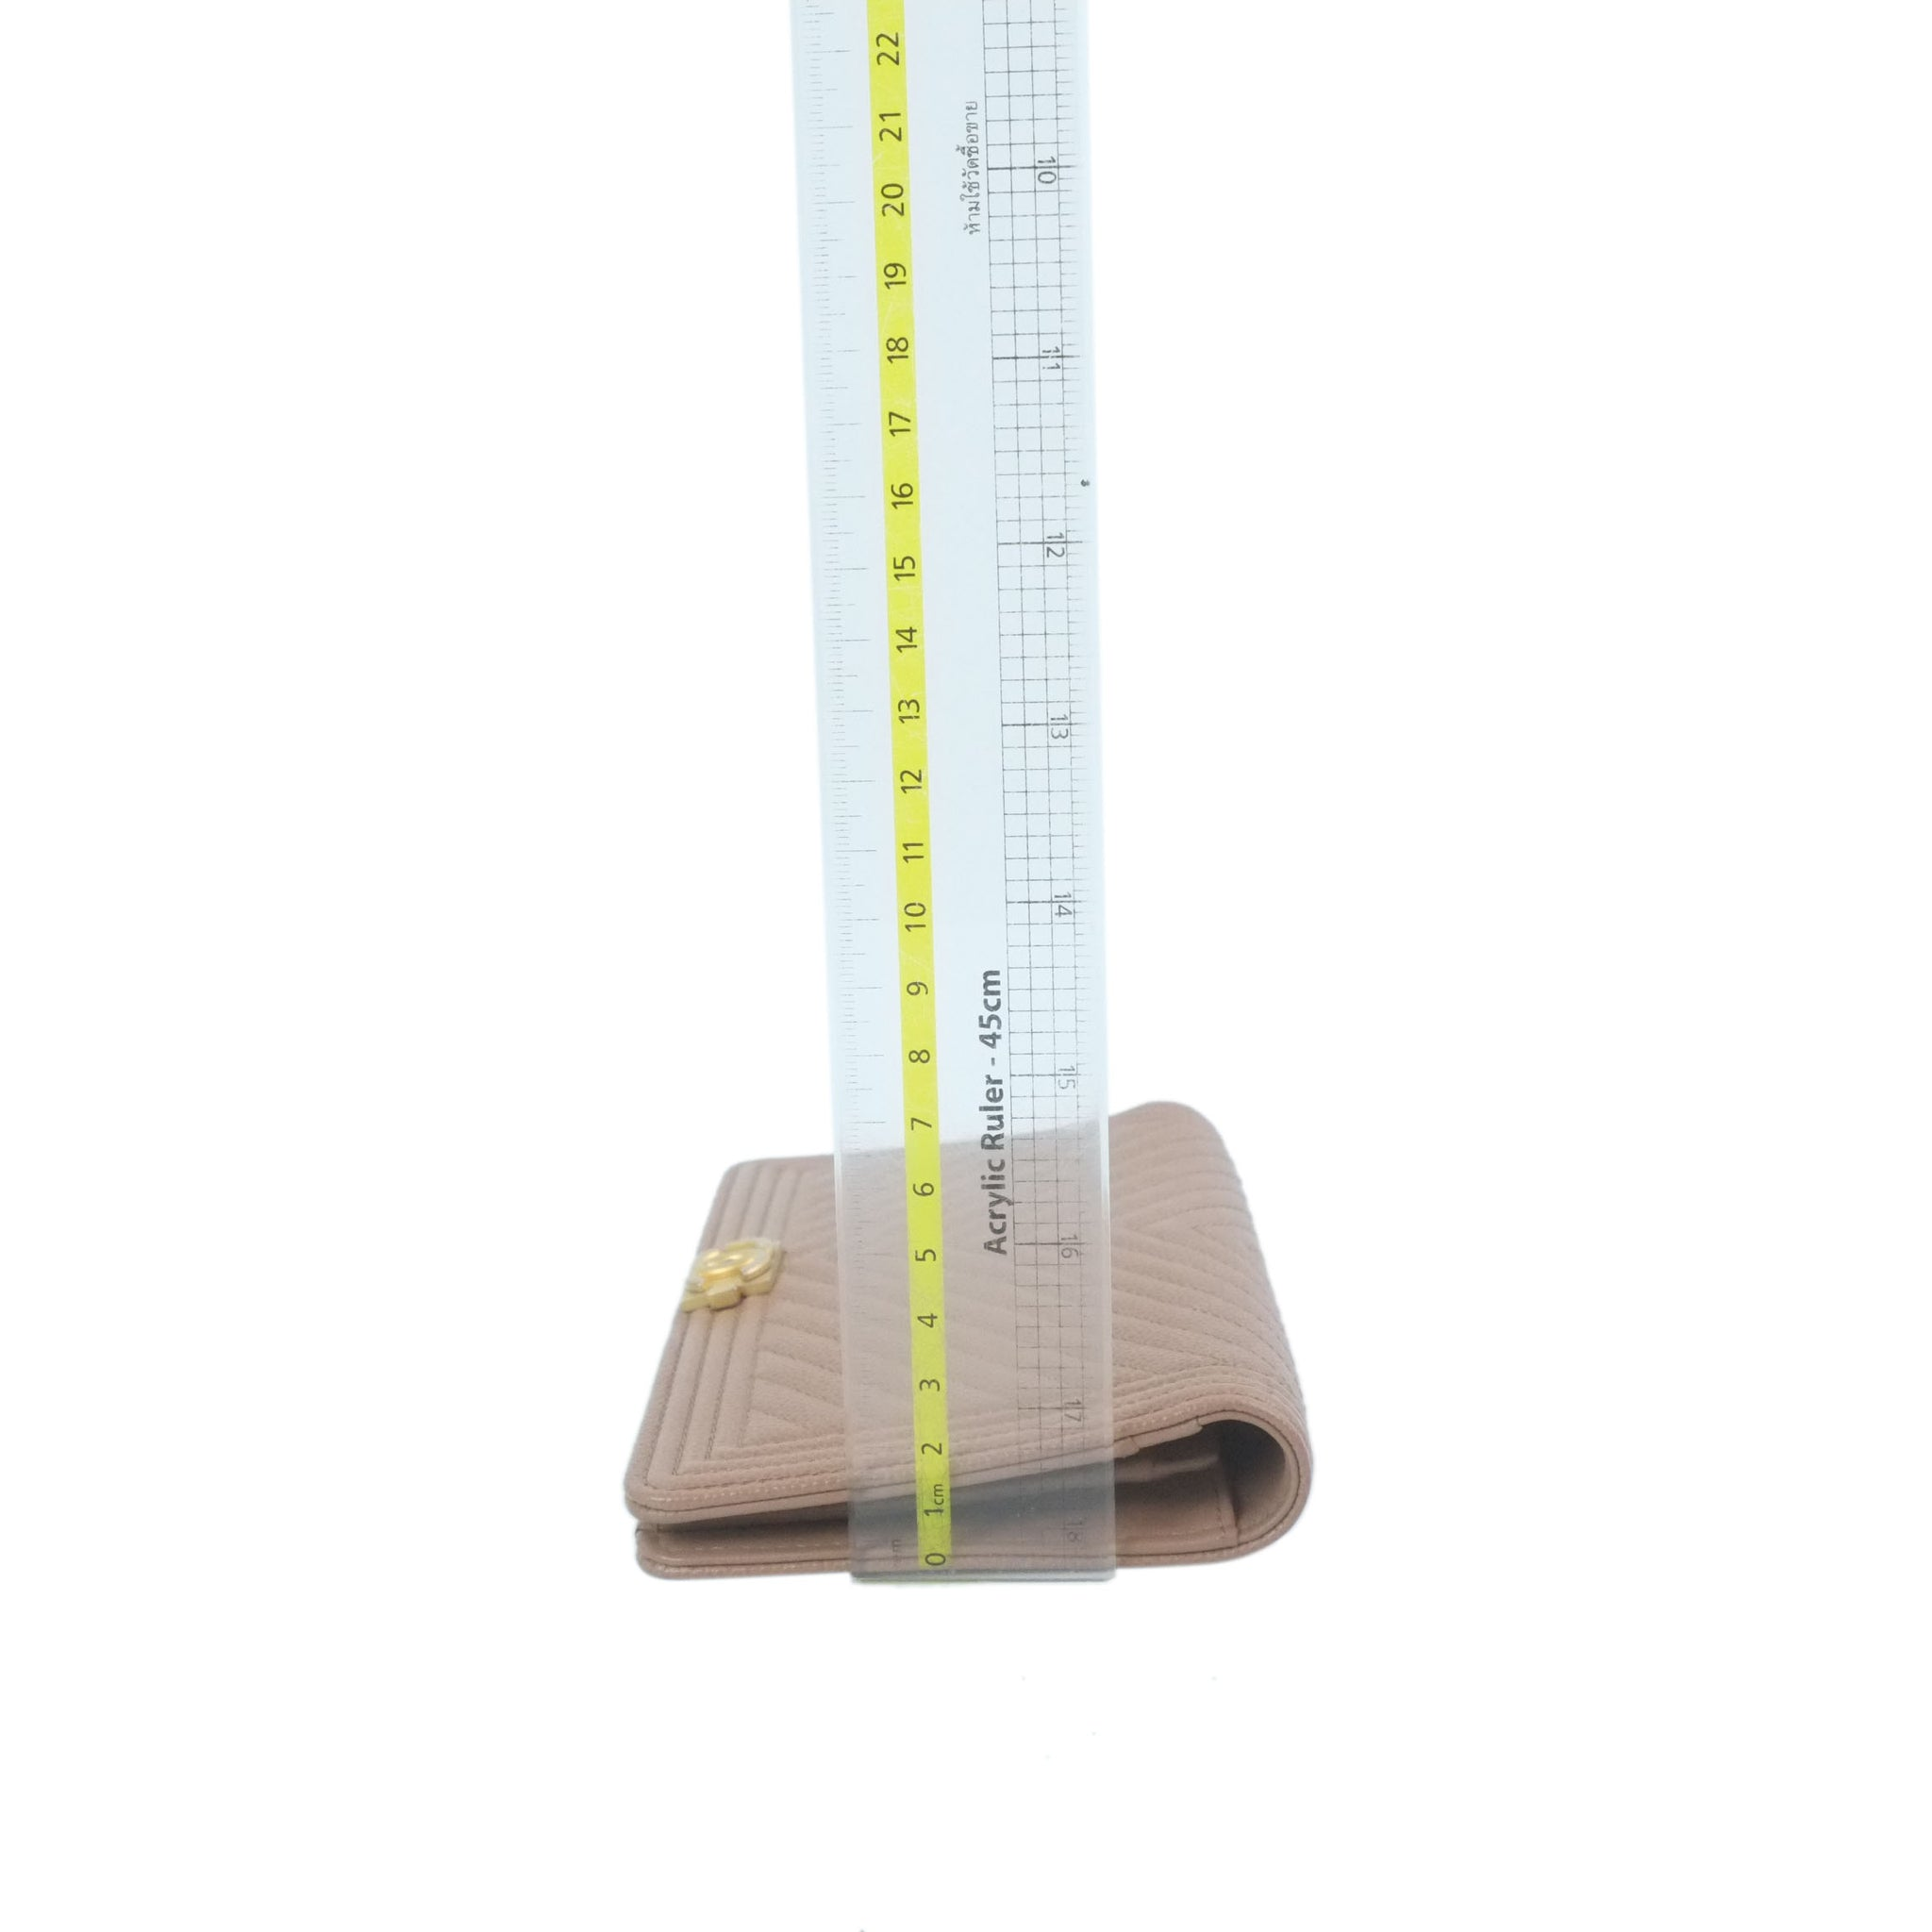 Chanel wallet on chain two tone beige black